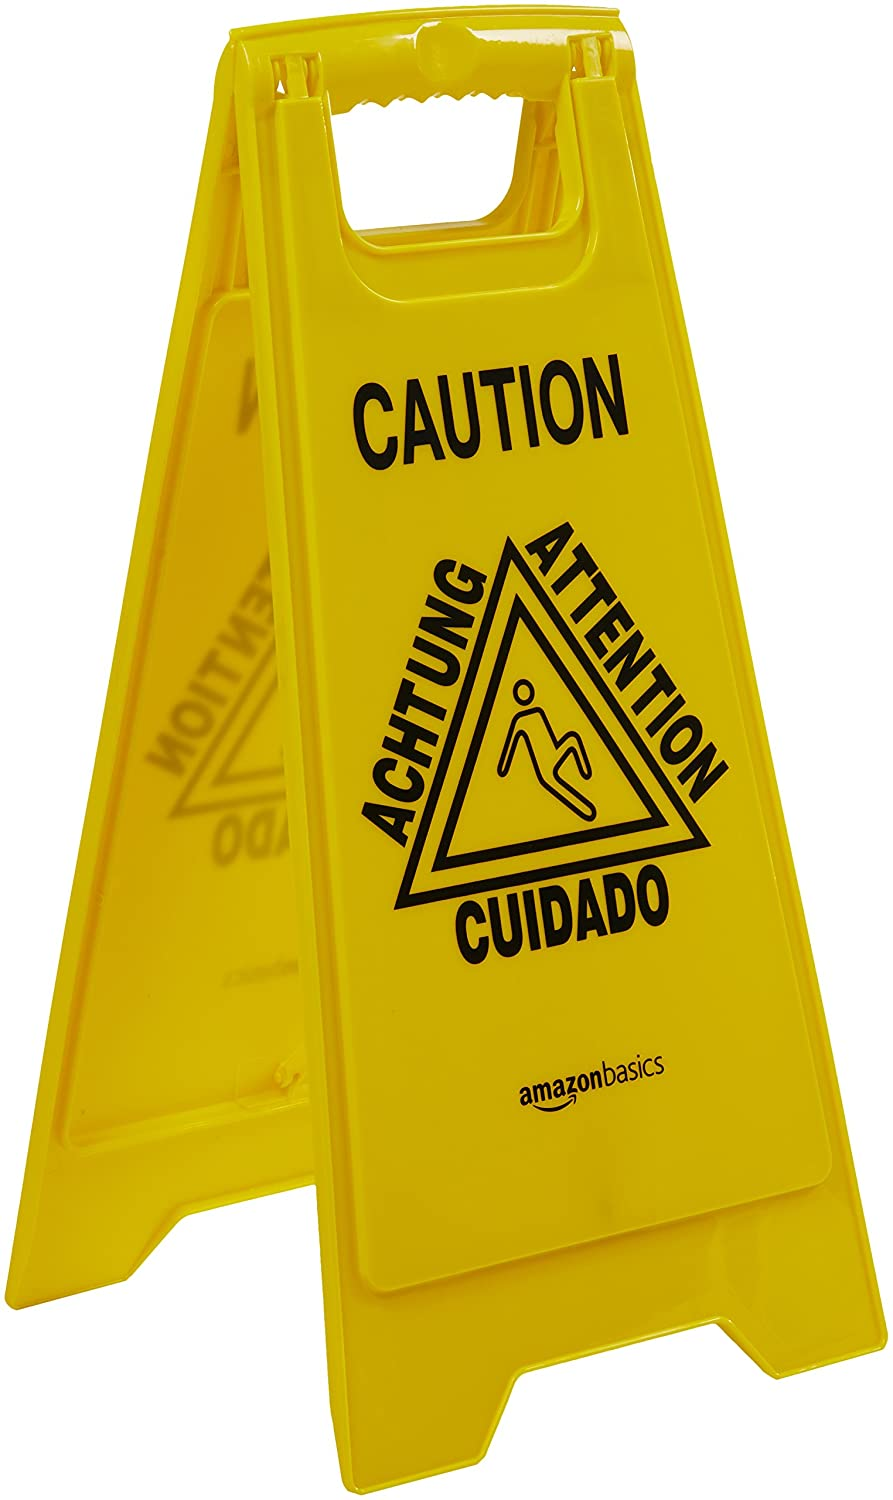 Multilingual Basics 2-Sided Floor Safety Sign Closed 6-Pack #338-2